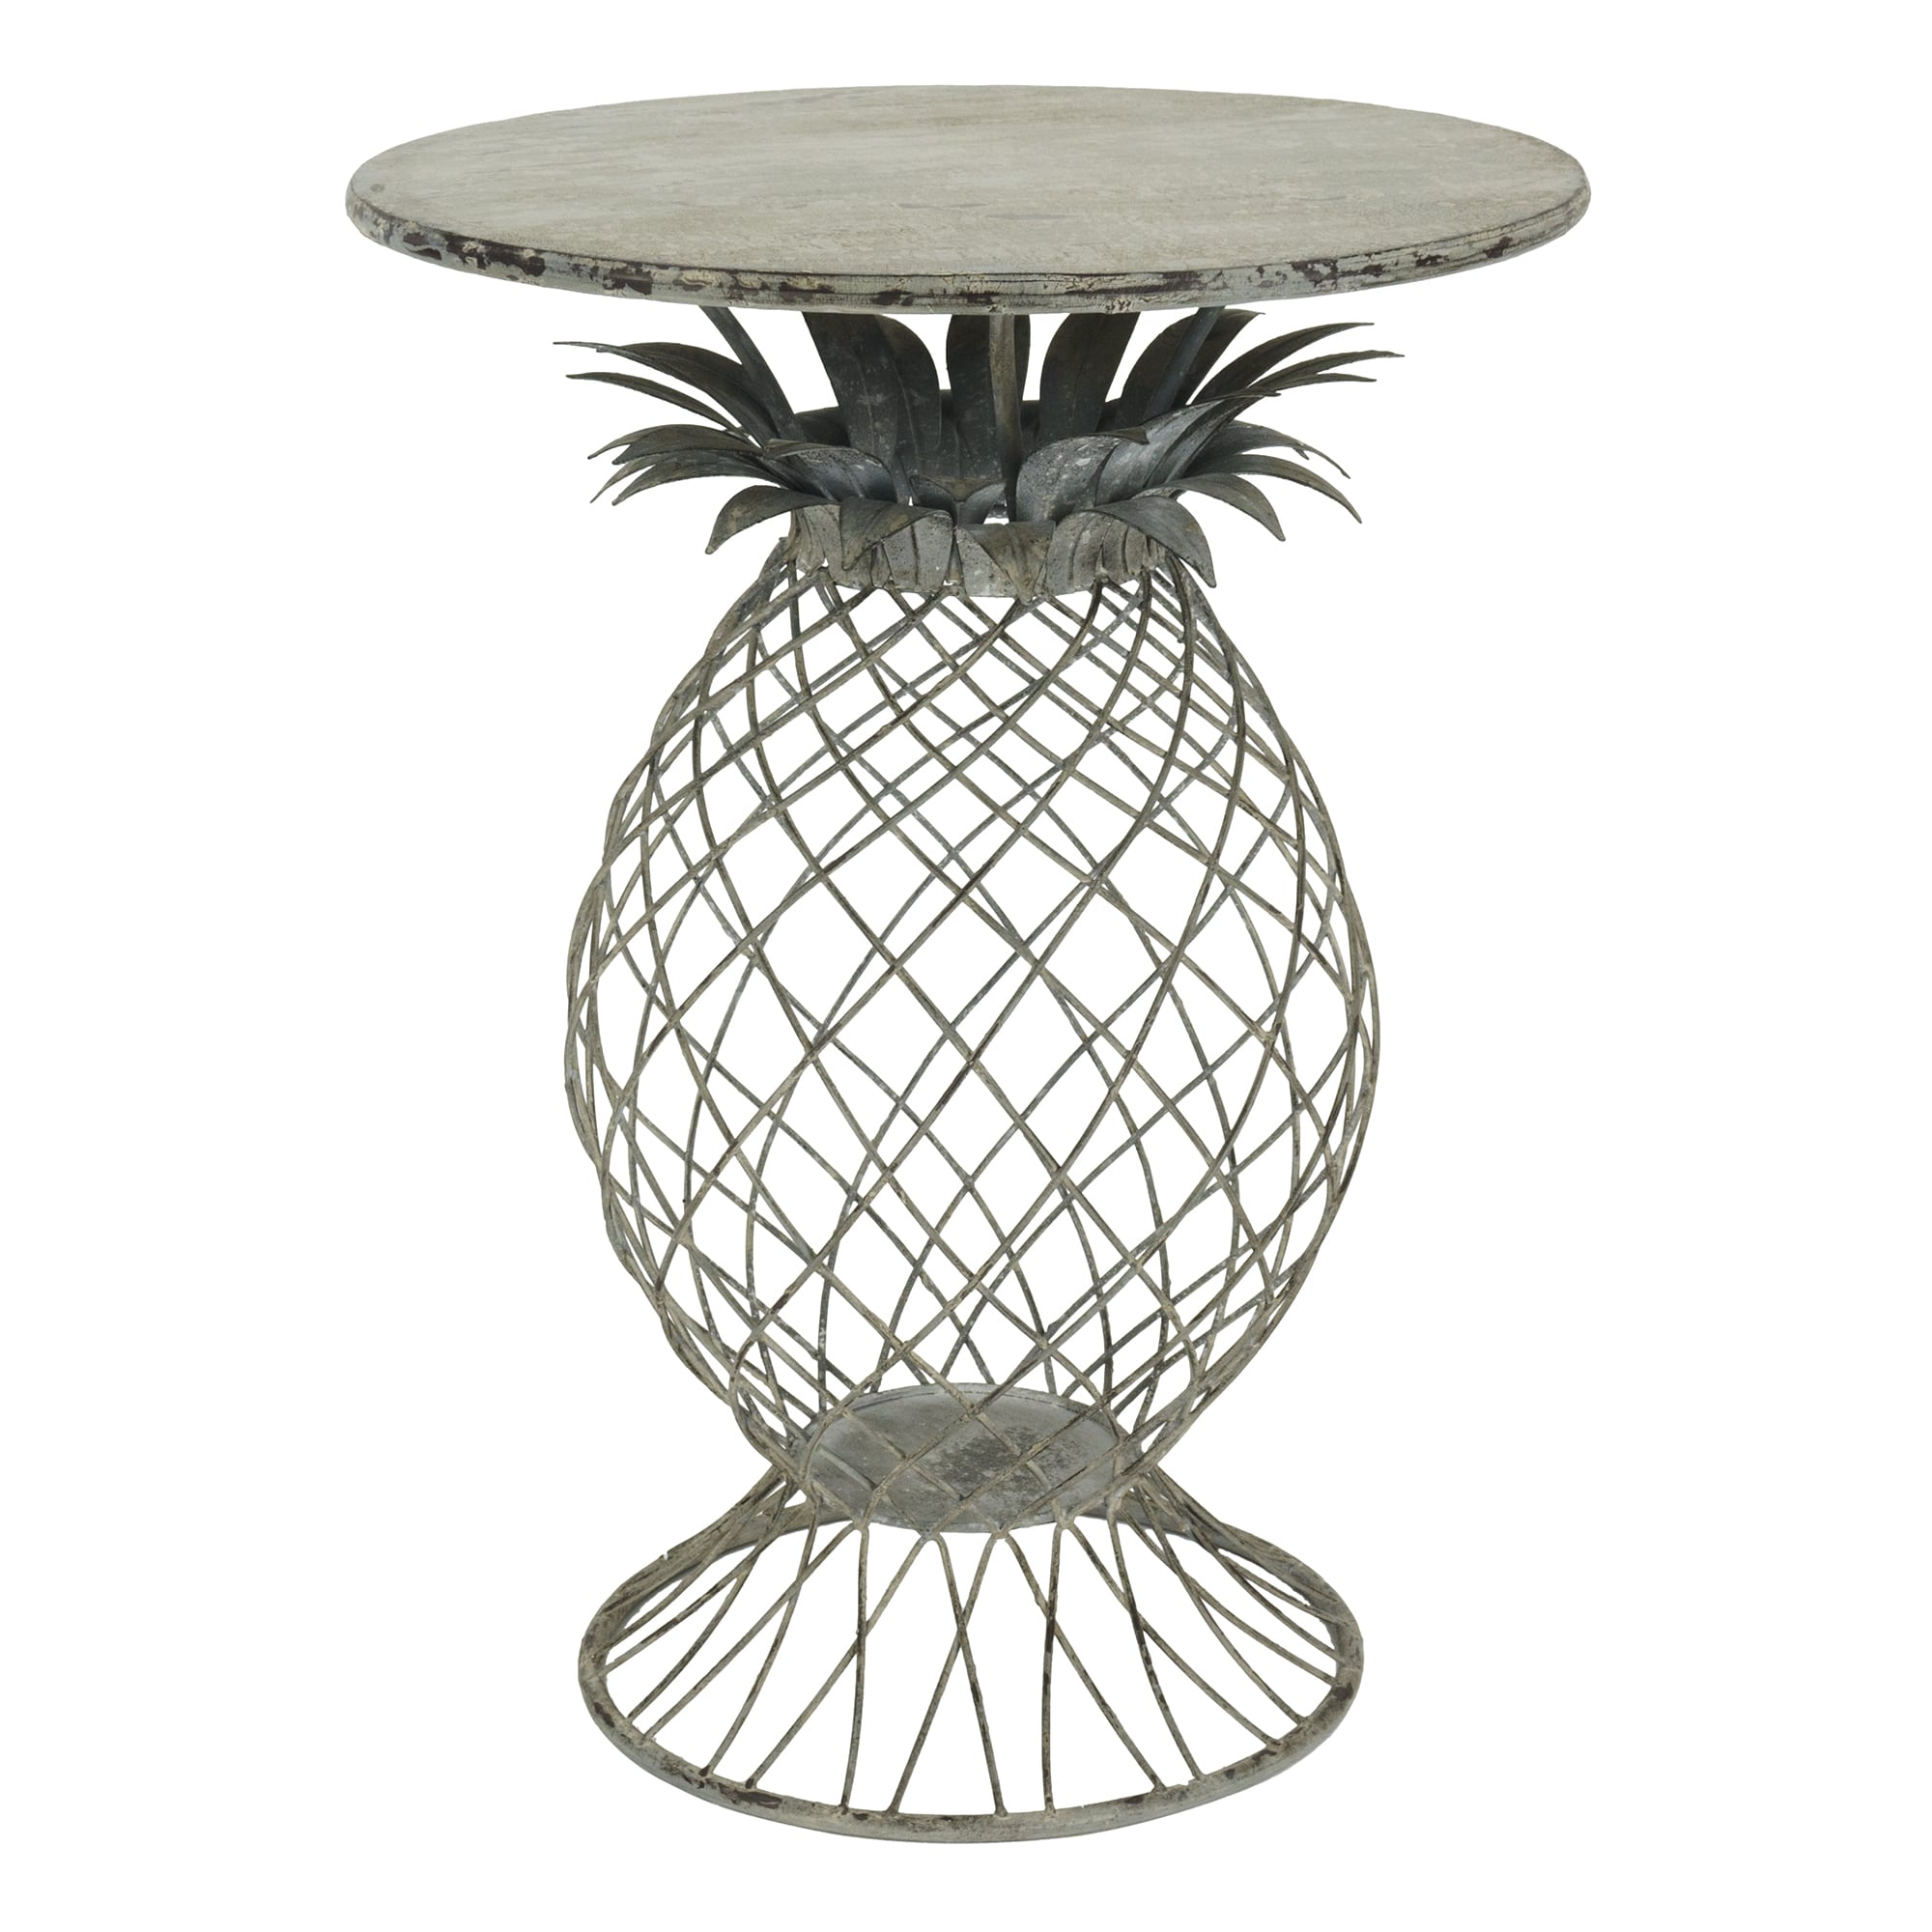 bombay outdoors kailua pineapple table free shipping today umbrella accent hallway lamp beach themed lamps red runner and placemats dark marble brown rattan coffee wyatt furniture